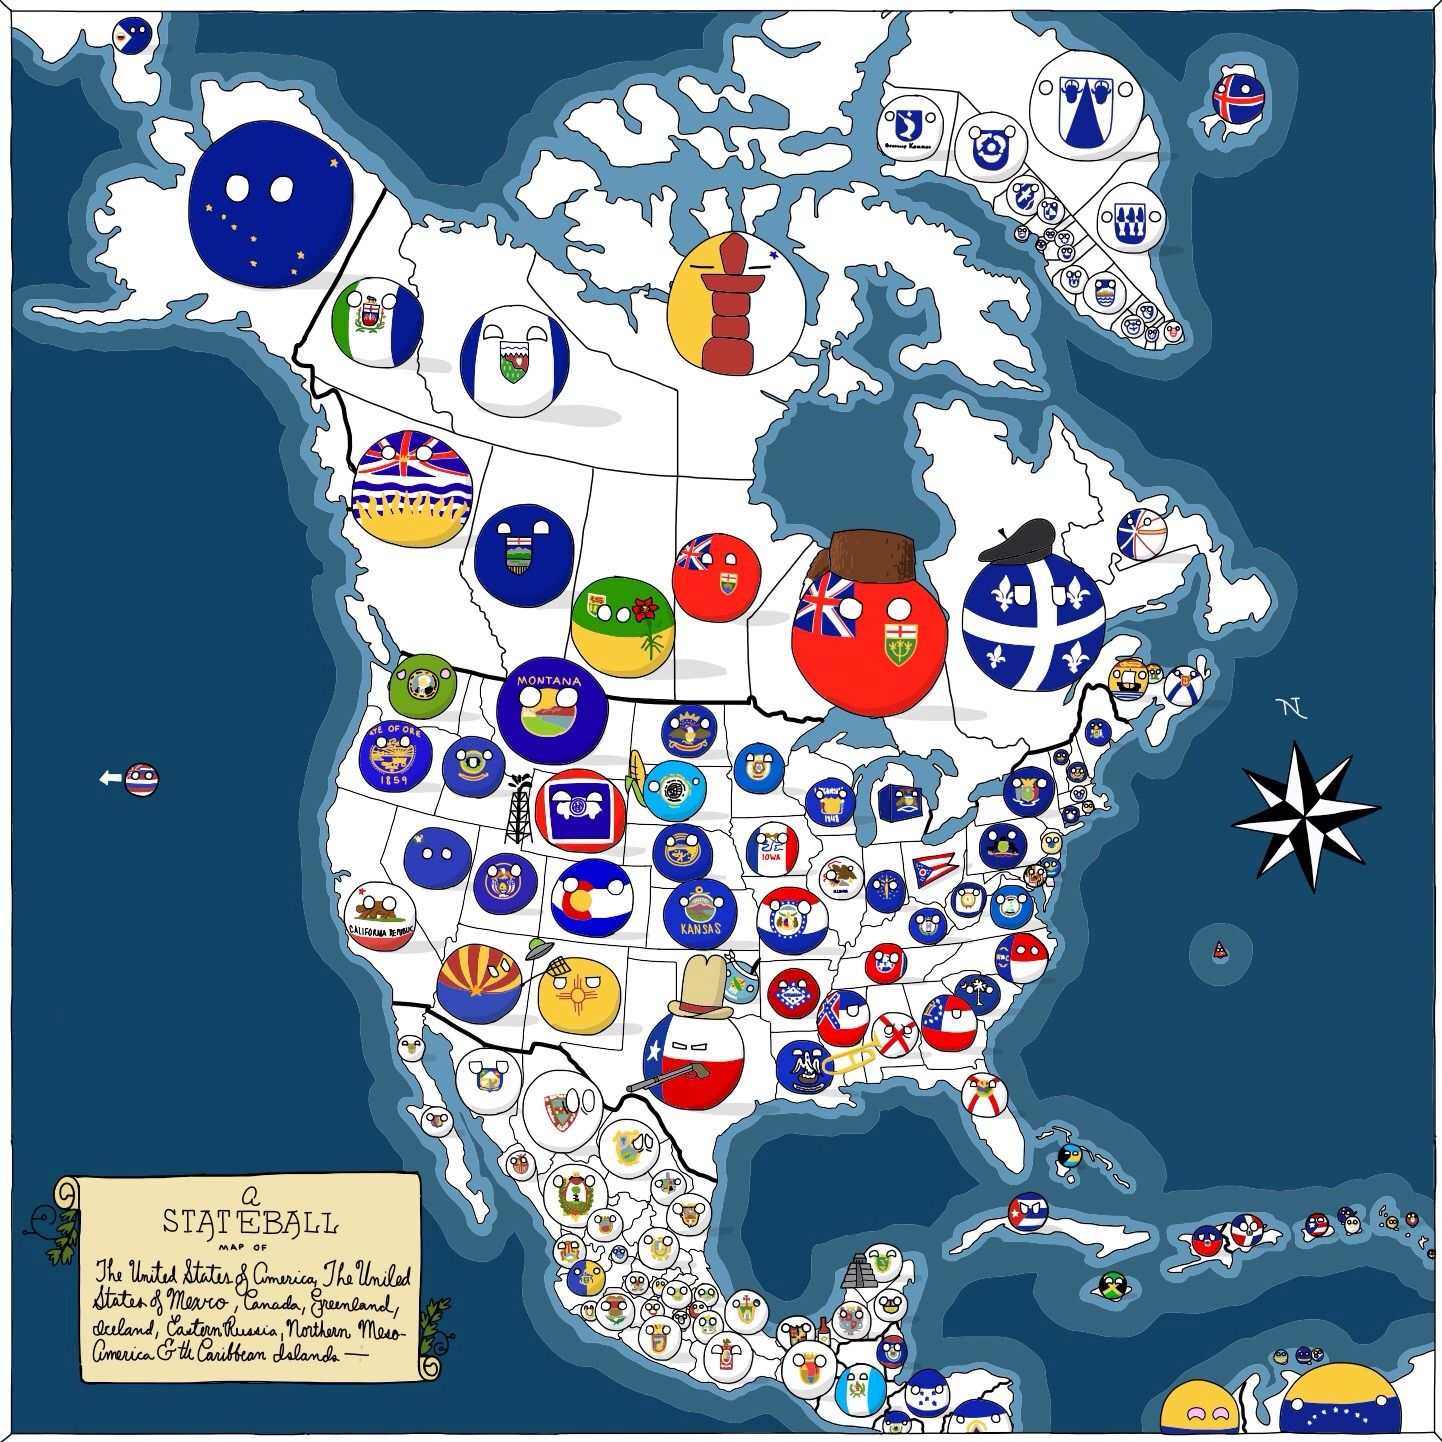 A map of north america canada usa mexico by grayfru stateball a map of north america canada usa mexico by grayfru stateball gumiabroncs Choice Image